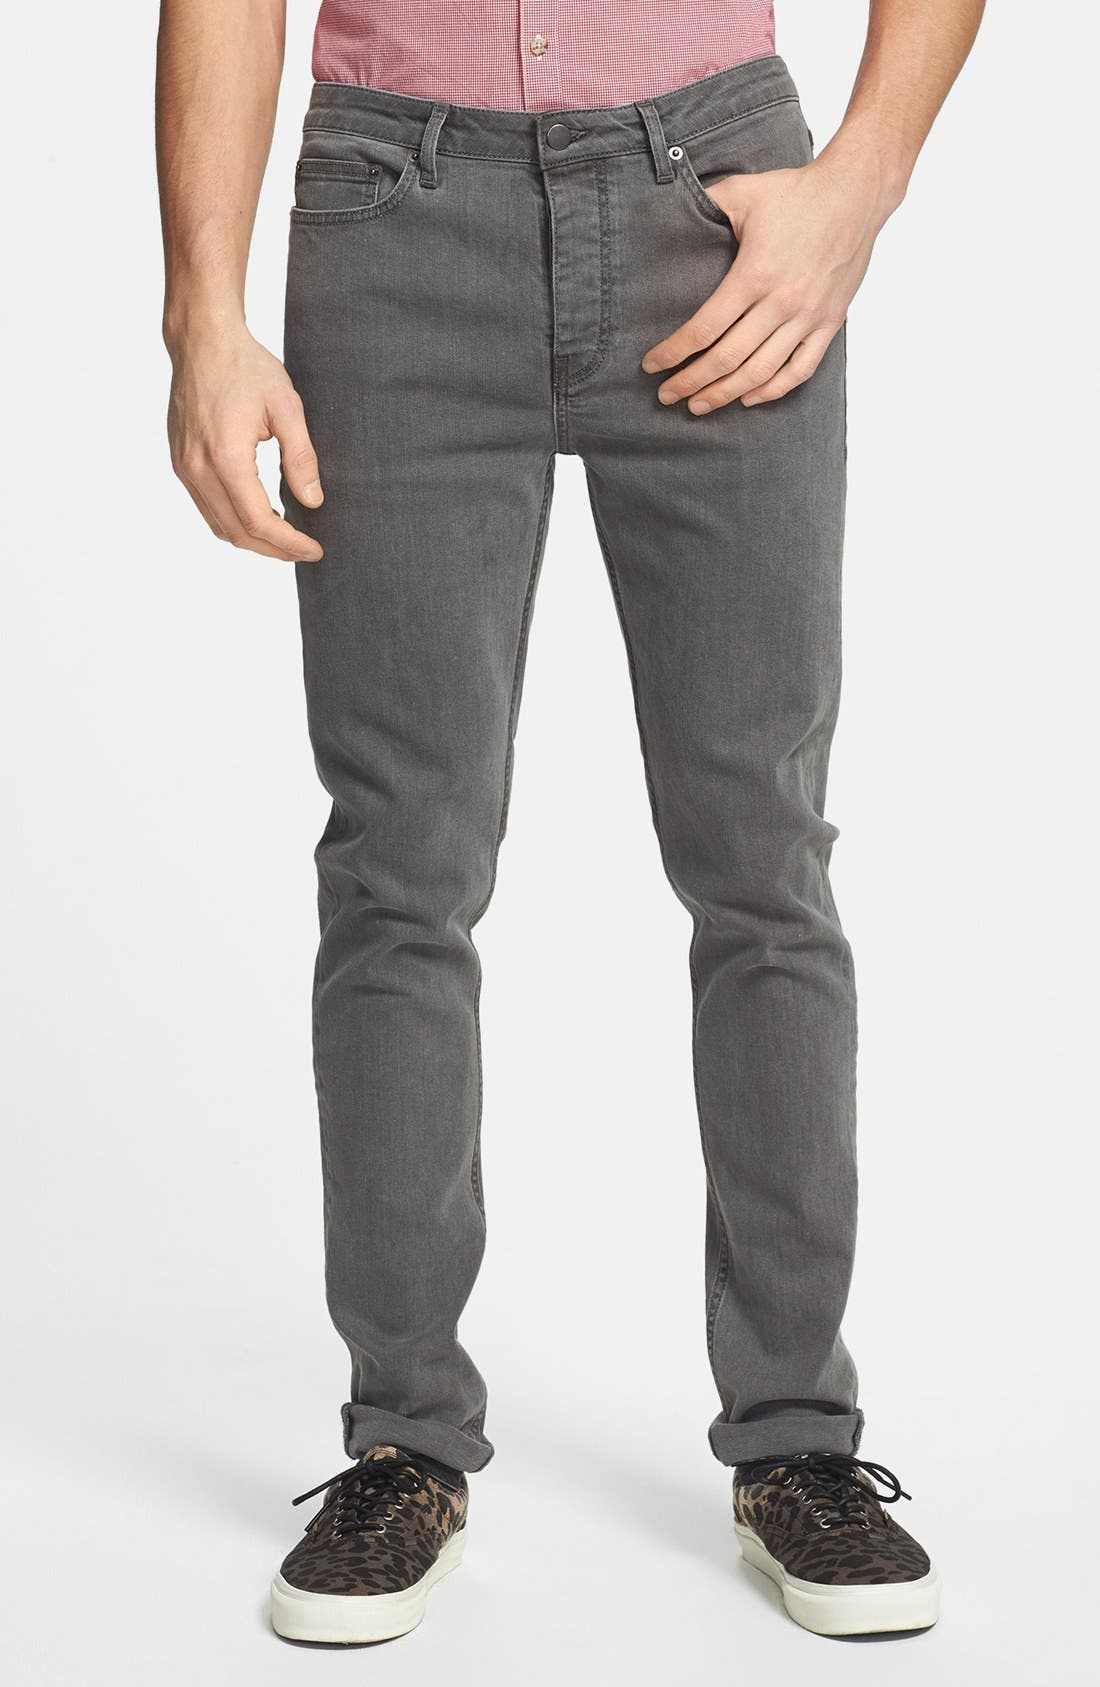 Alternate Image 1 Selected - Topman Stretch Skinny Fit Stretch Jeans (Grey)